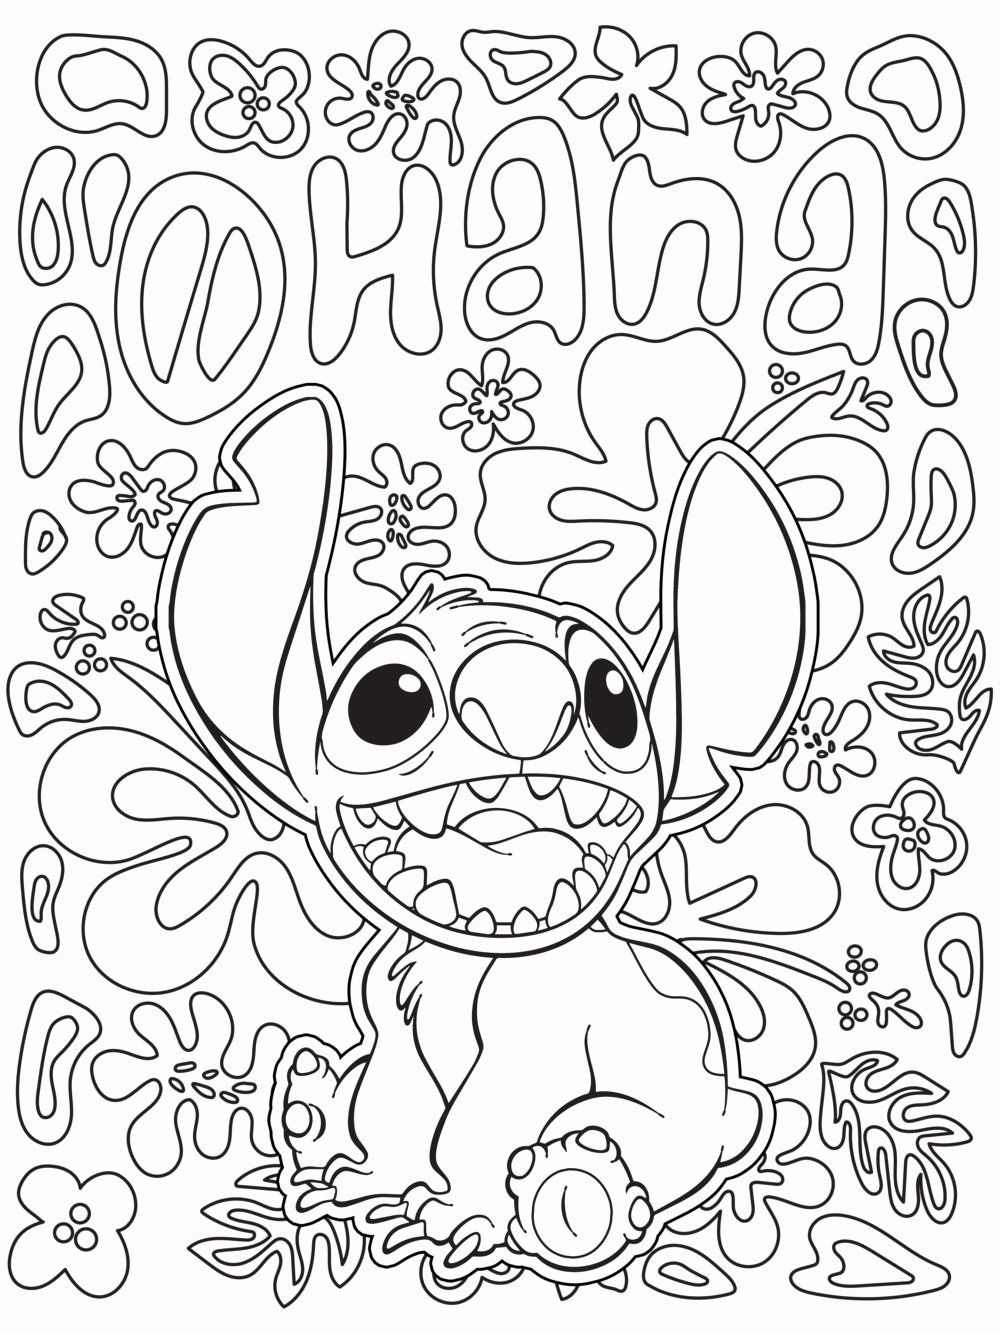 Pin on Stitch coloring pages